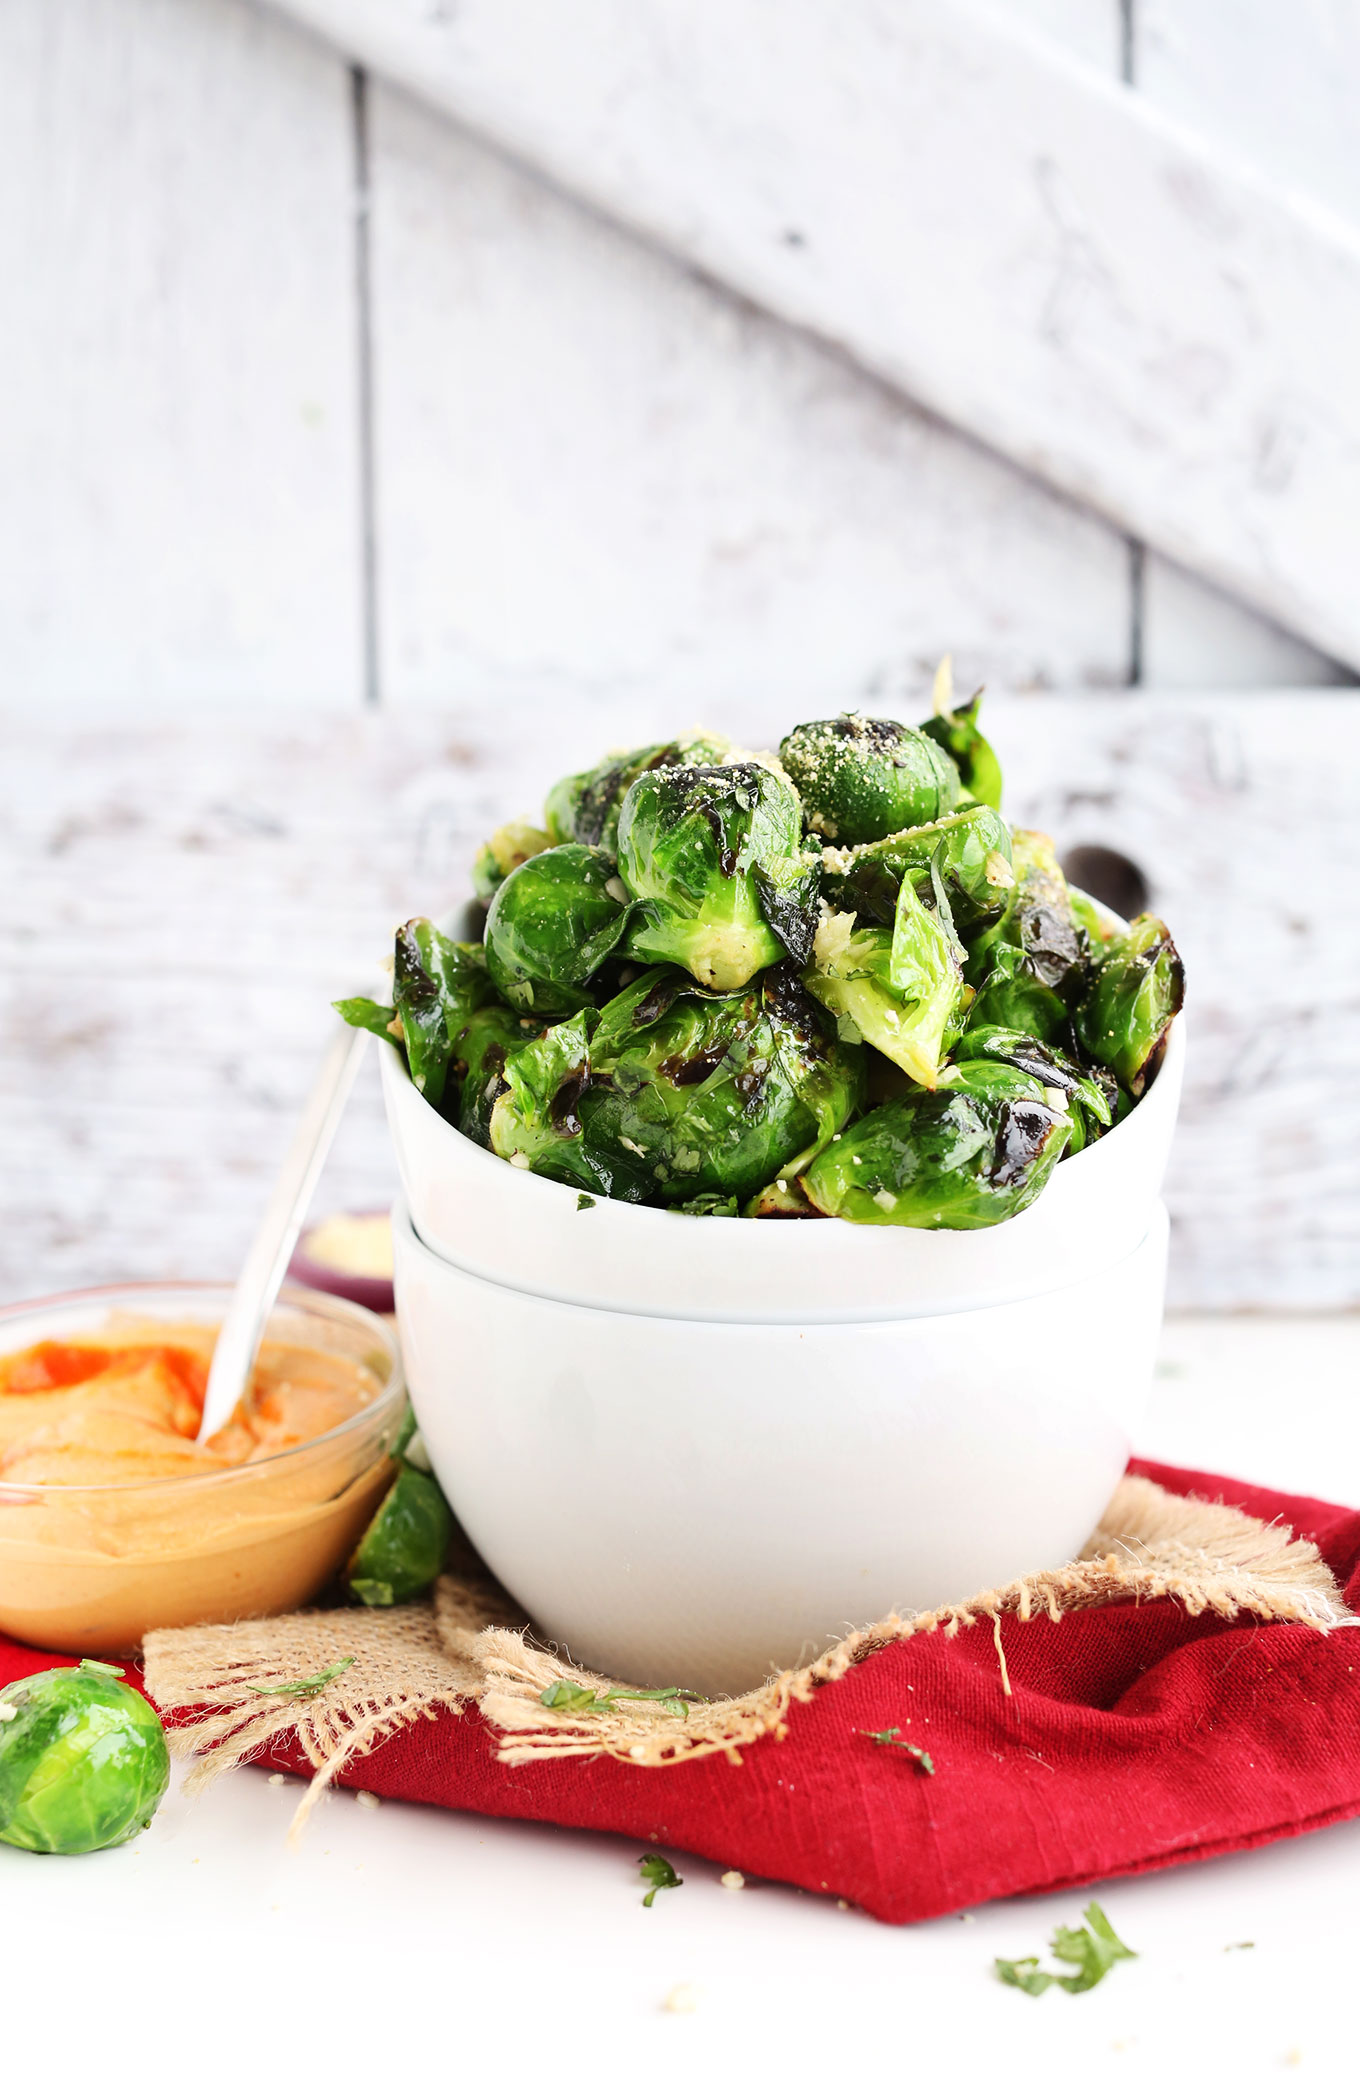 Crispy-Roasted-Brussels-Sprouts-with-spicy-Sriracha-Aioli-The-perfect-healthier-appetizer-or-side-dish-vegan-glutenfree-healthy-appetizer